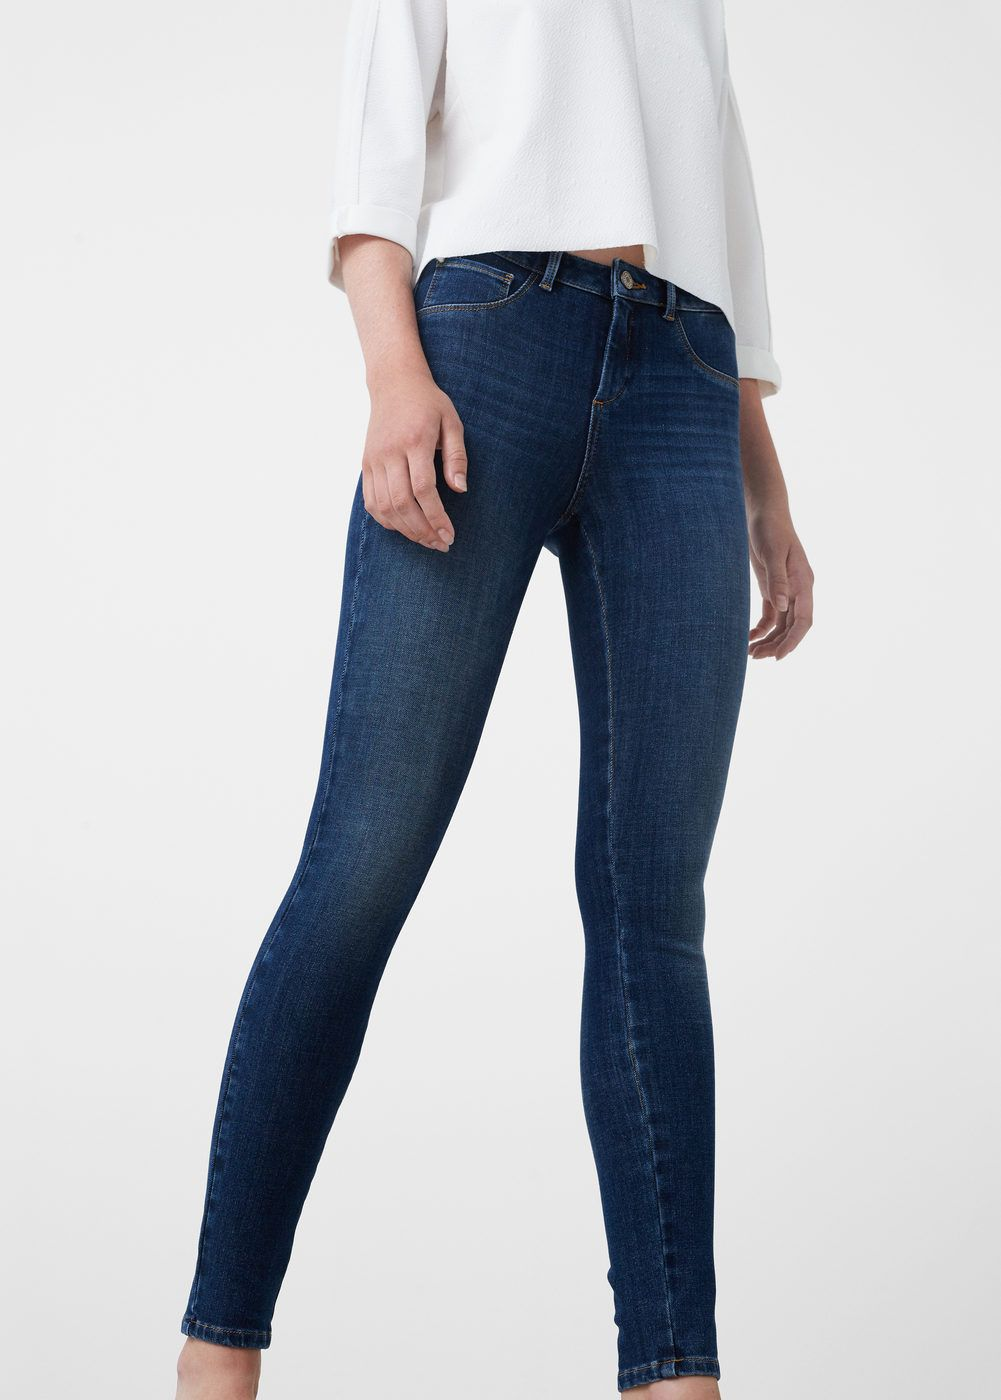 02fd4365d Jeans skinny push-up irina - Mulher | Outfit 2 | Jeans, High waist ...